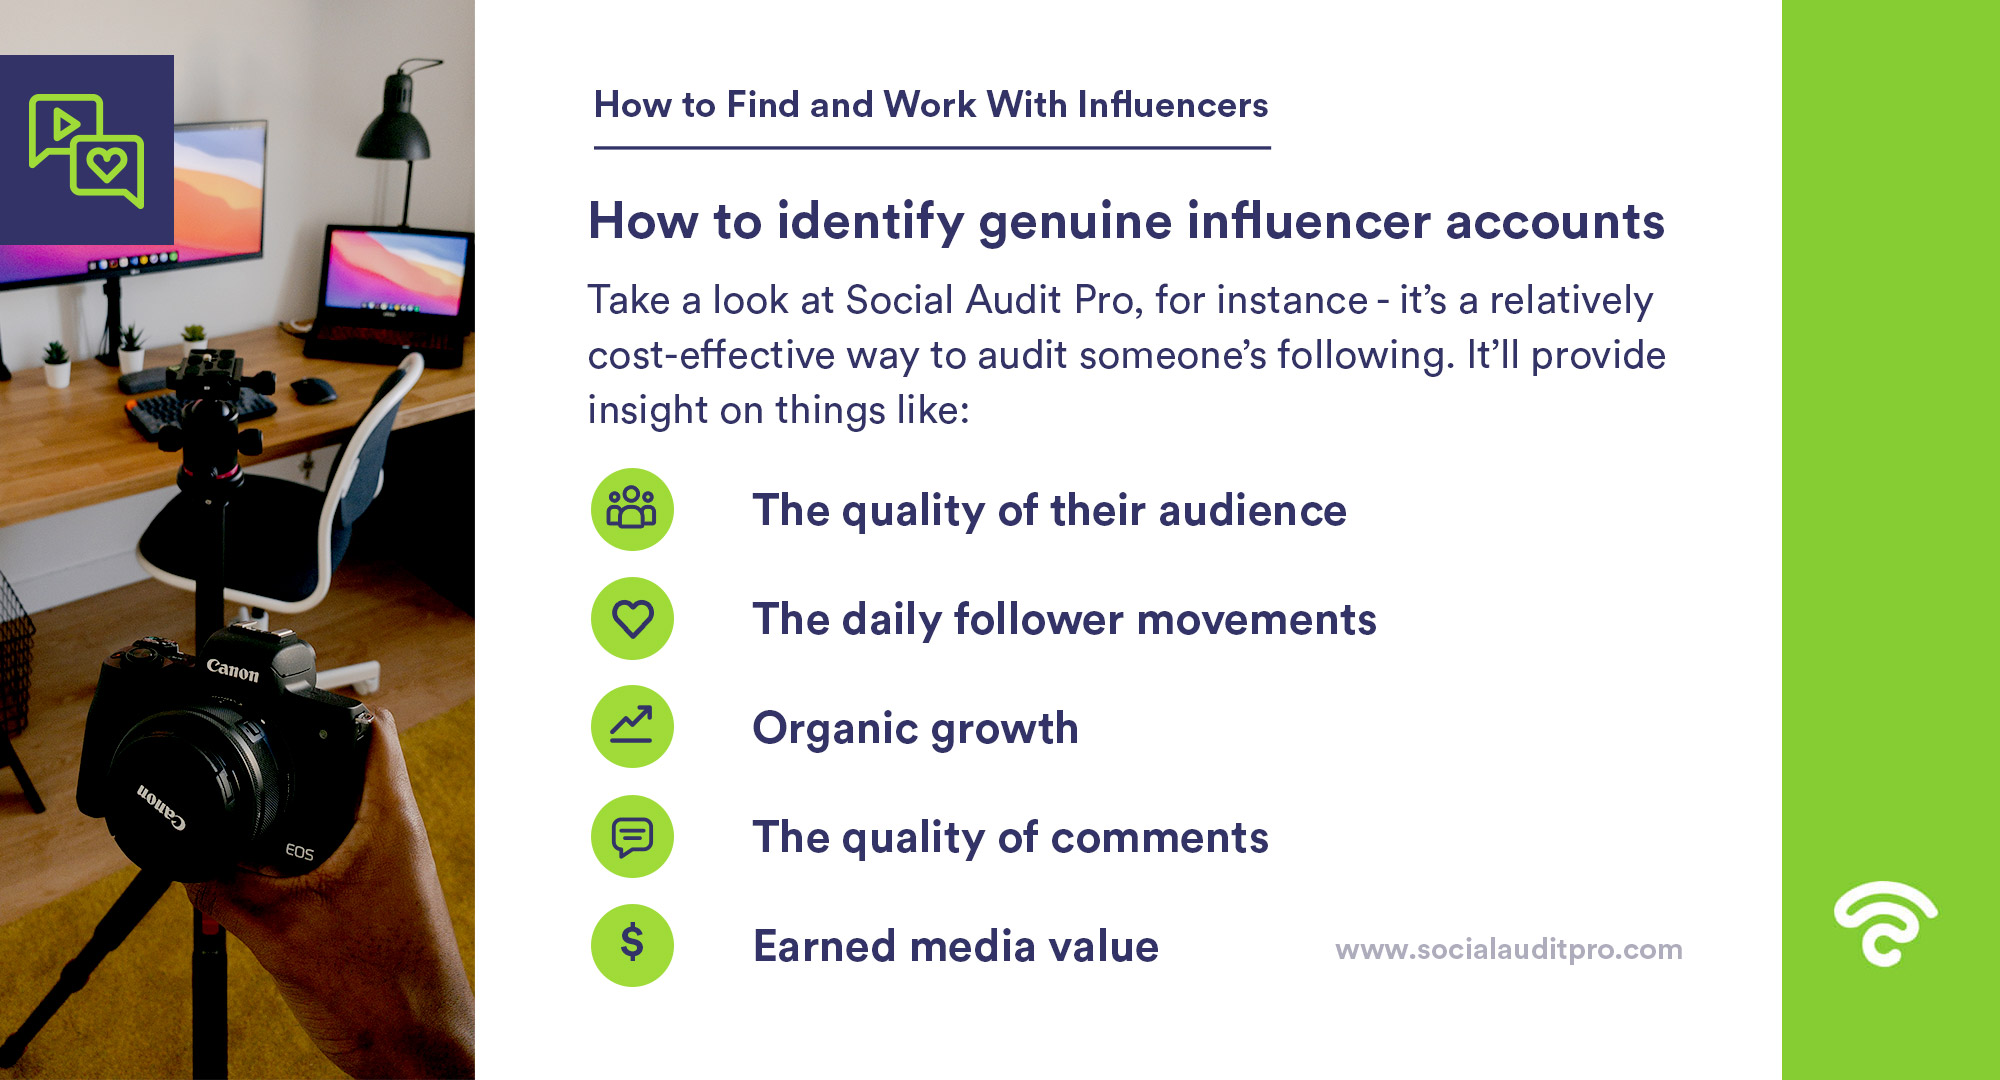 How to identify genuine influencer accounts